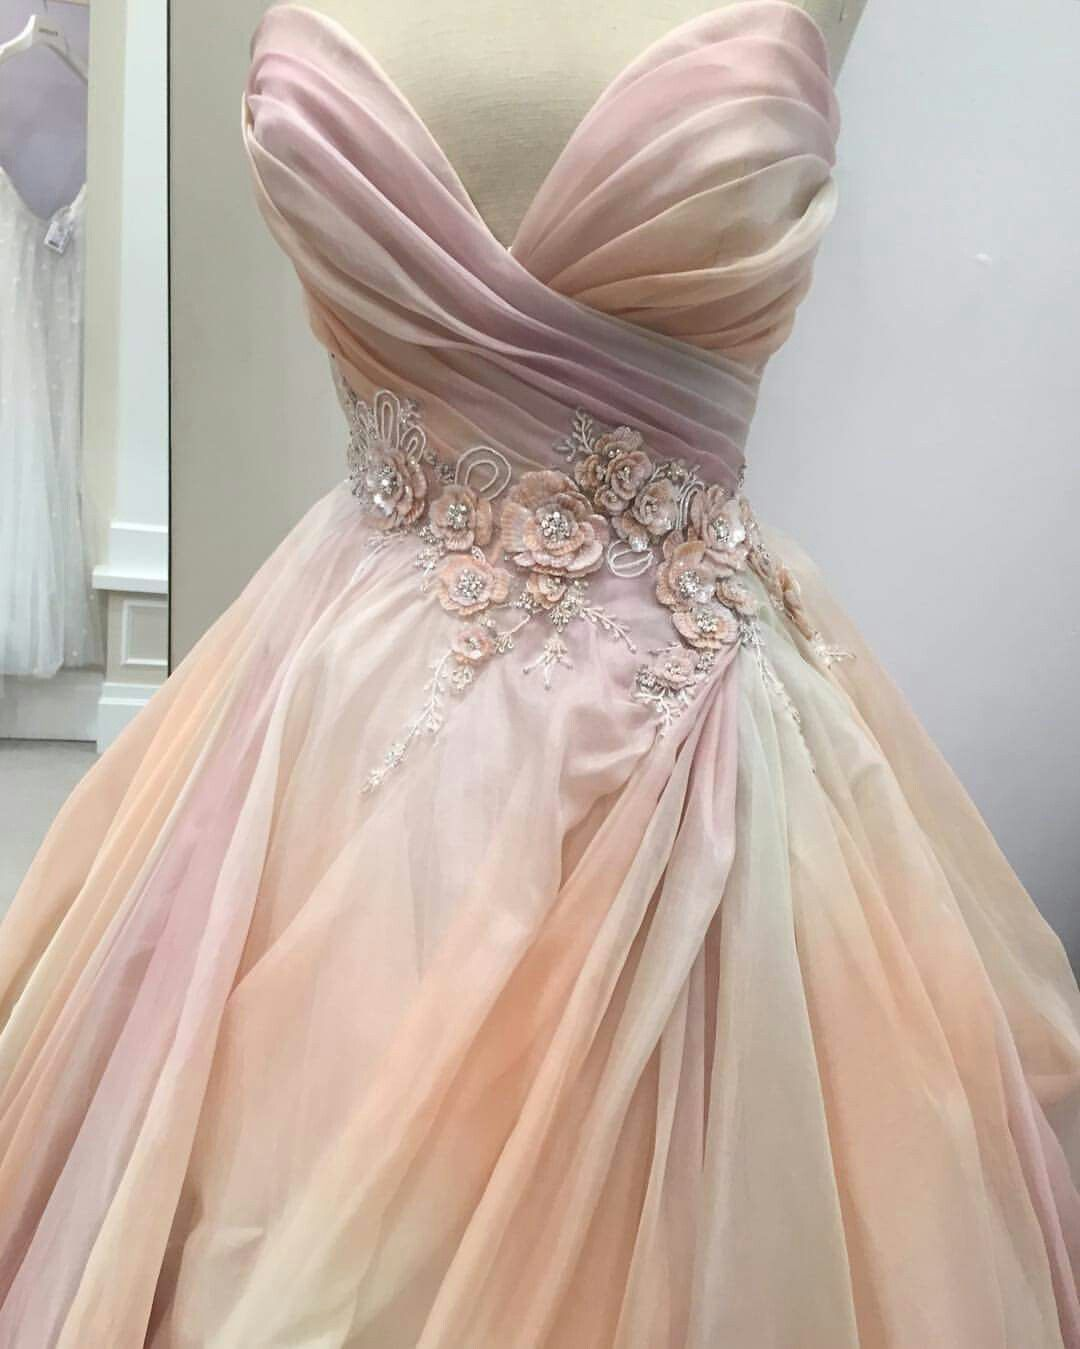 How Pretty Pale Sherbet Colors And I Like The Style Lazaro